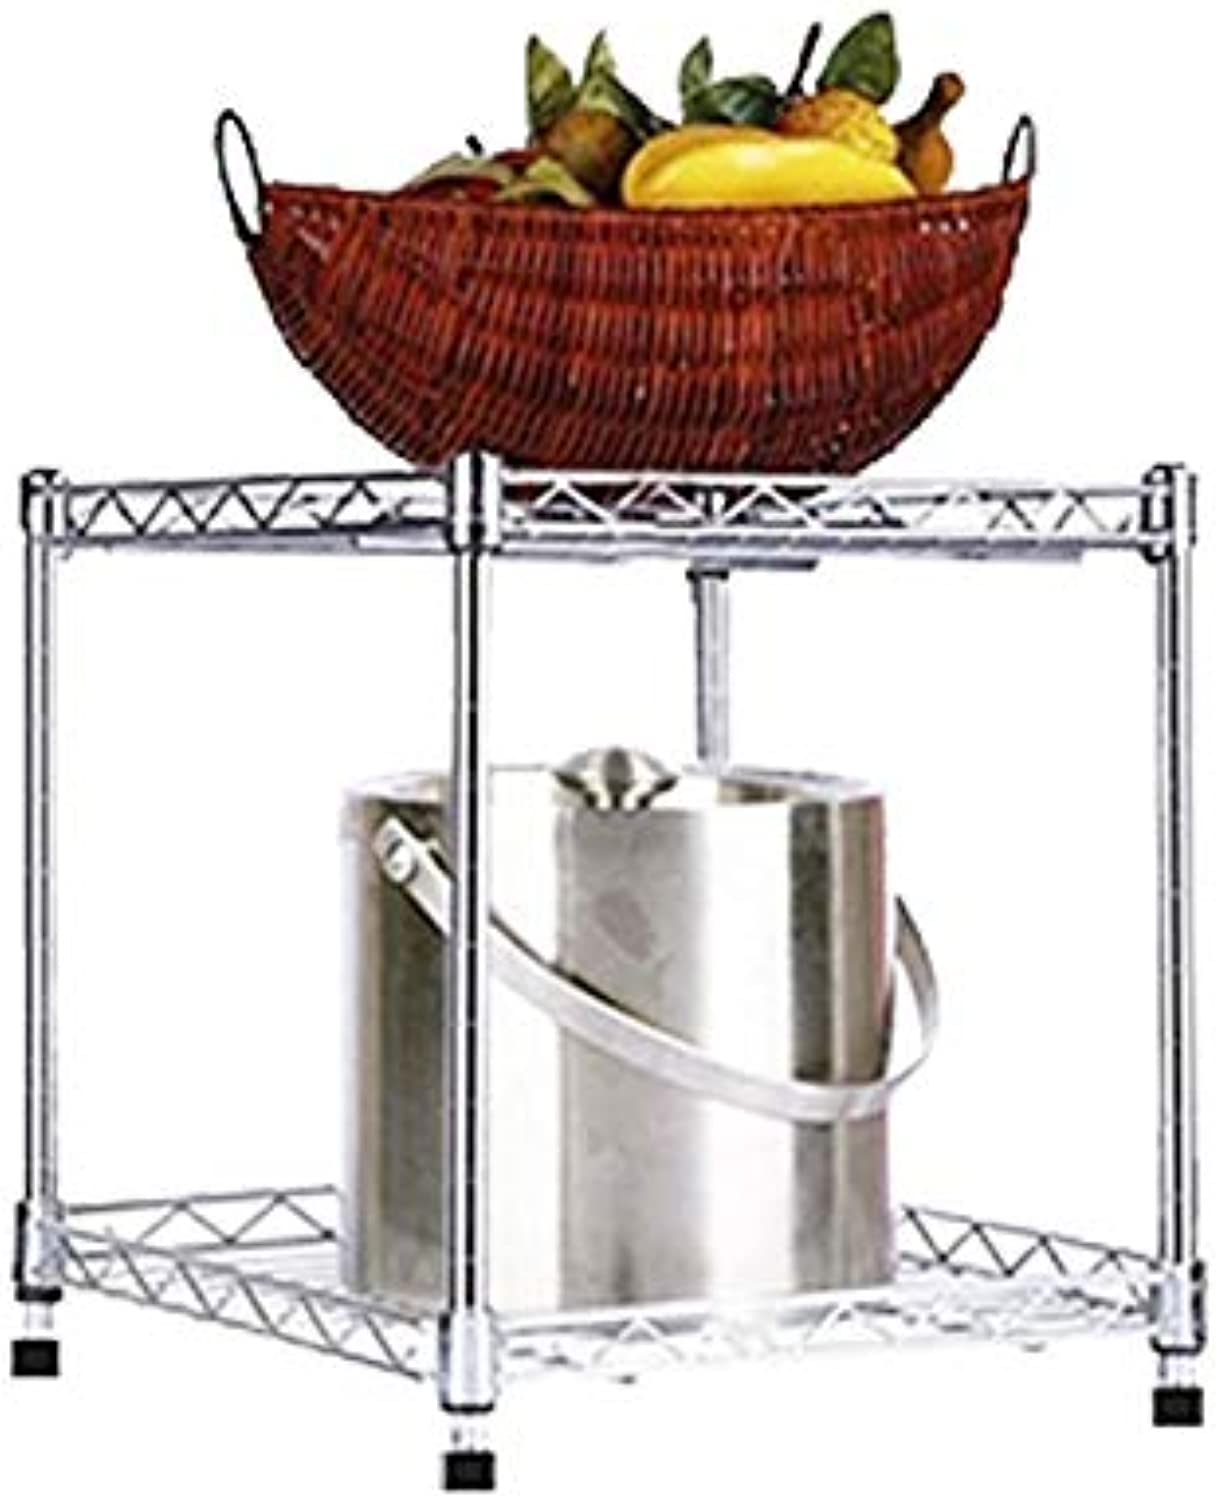 Chuen Lung Kitchen 304 Stainless Steel Cutlery Storage Multi-Layer Shelf, Height Adjustable, with Fixing Hardware,Multi-Size Selection (color   Double Layer, Size   60×15×45CM)